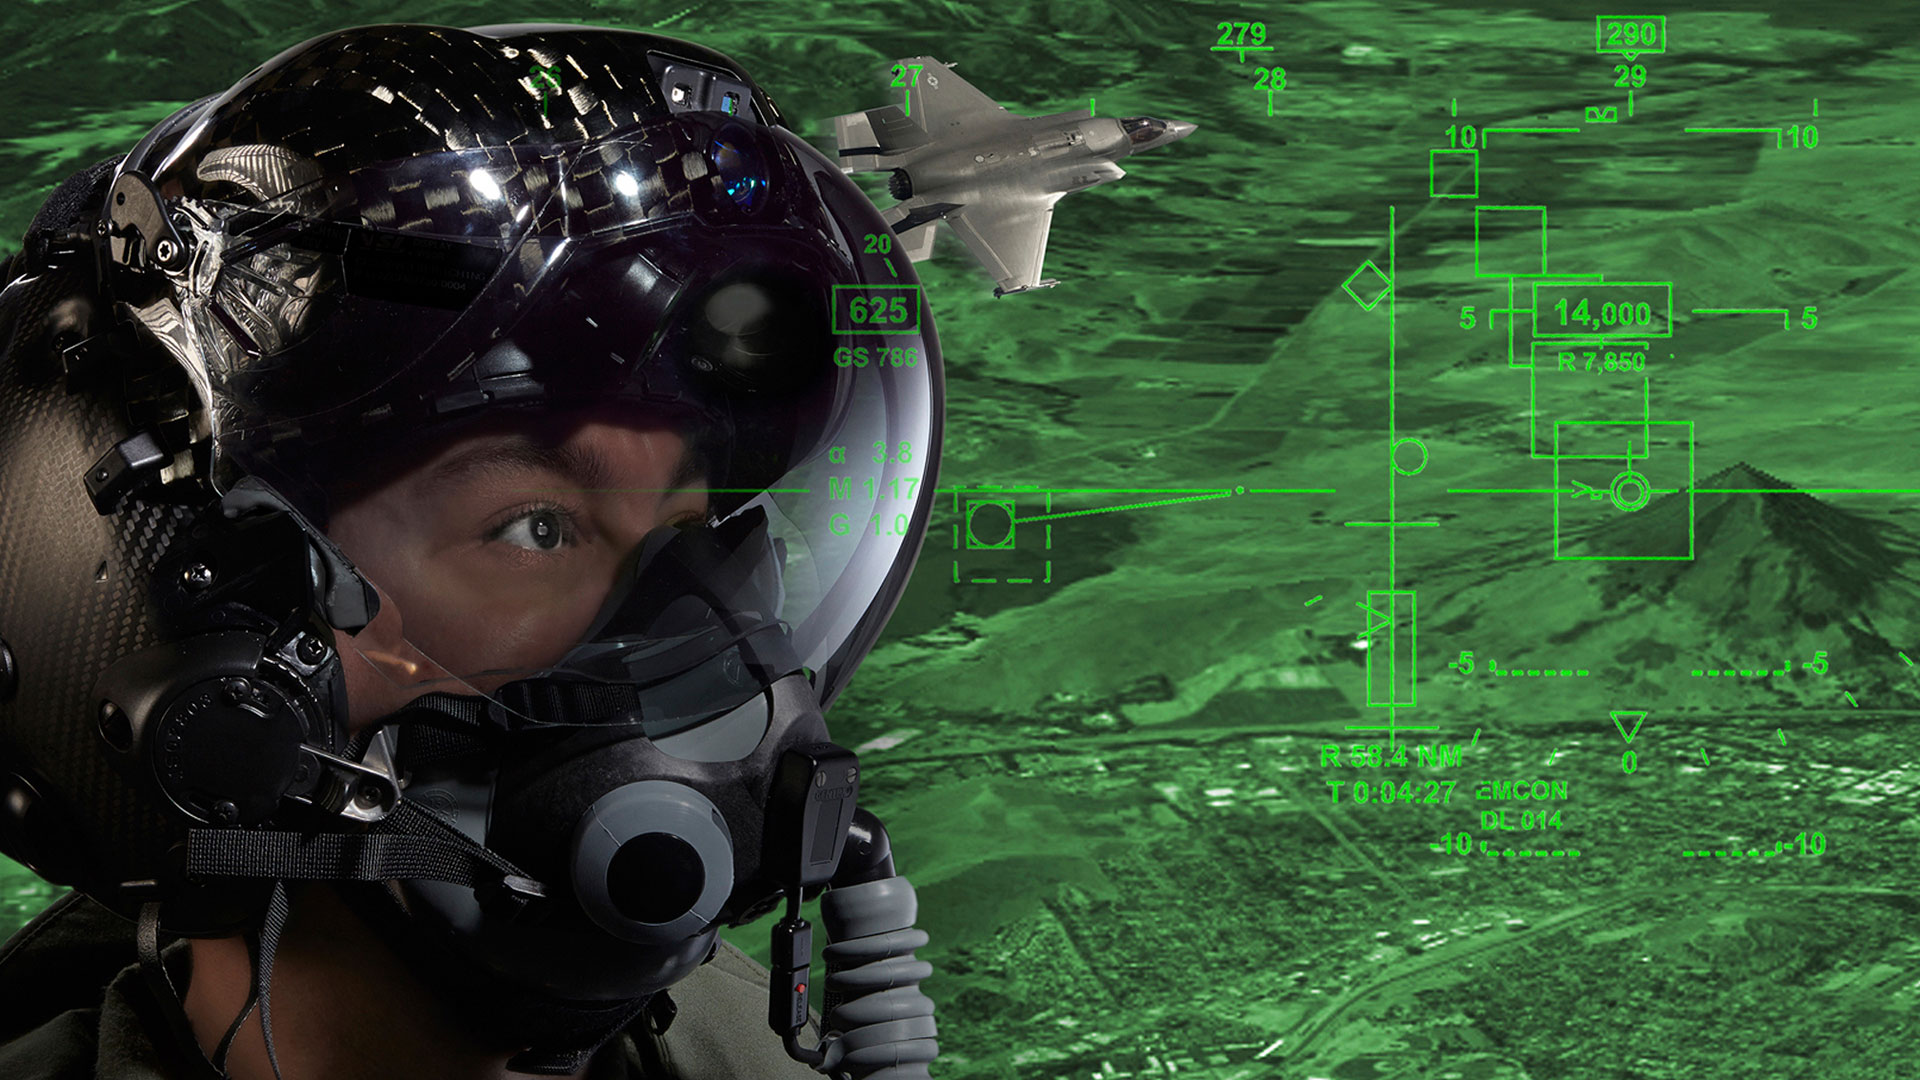 F-35 Helmet Mounted Display